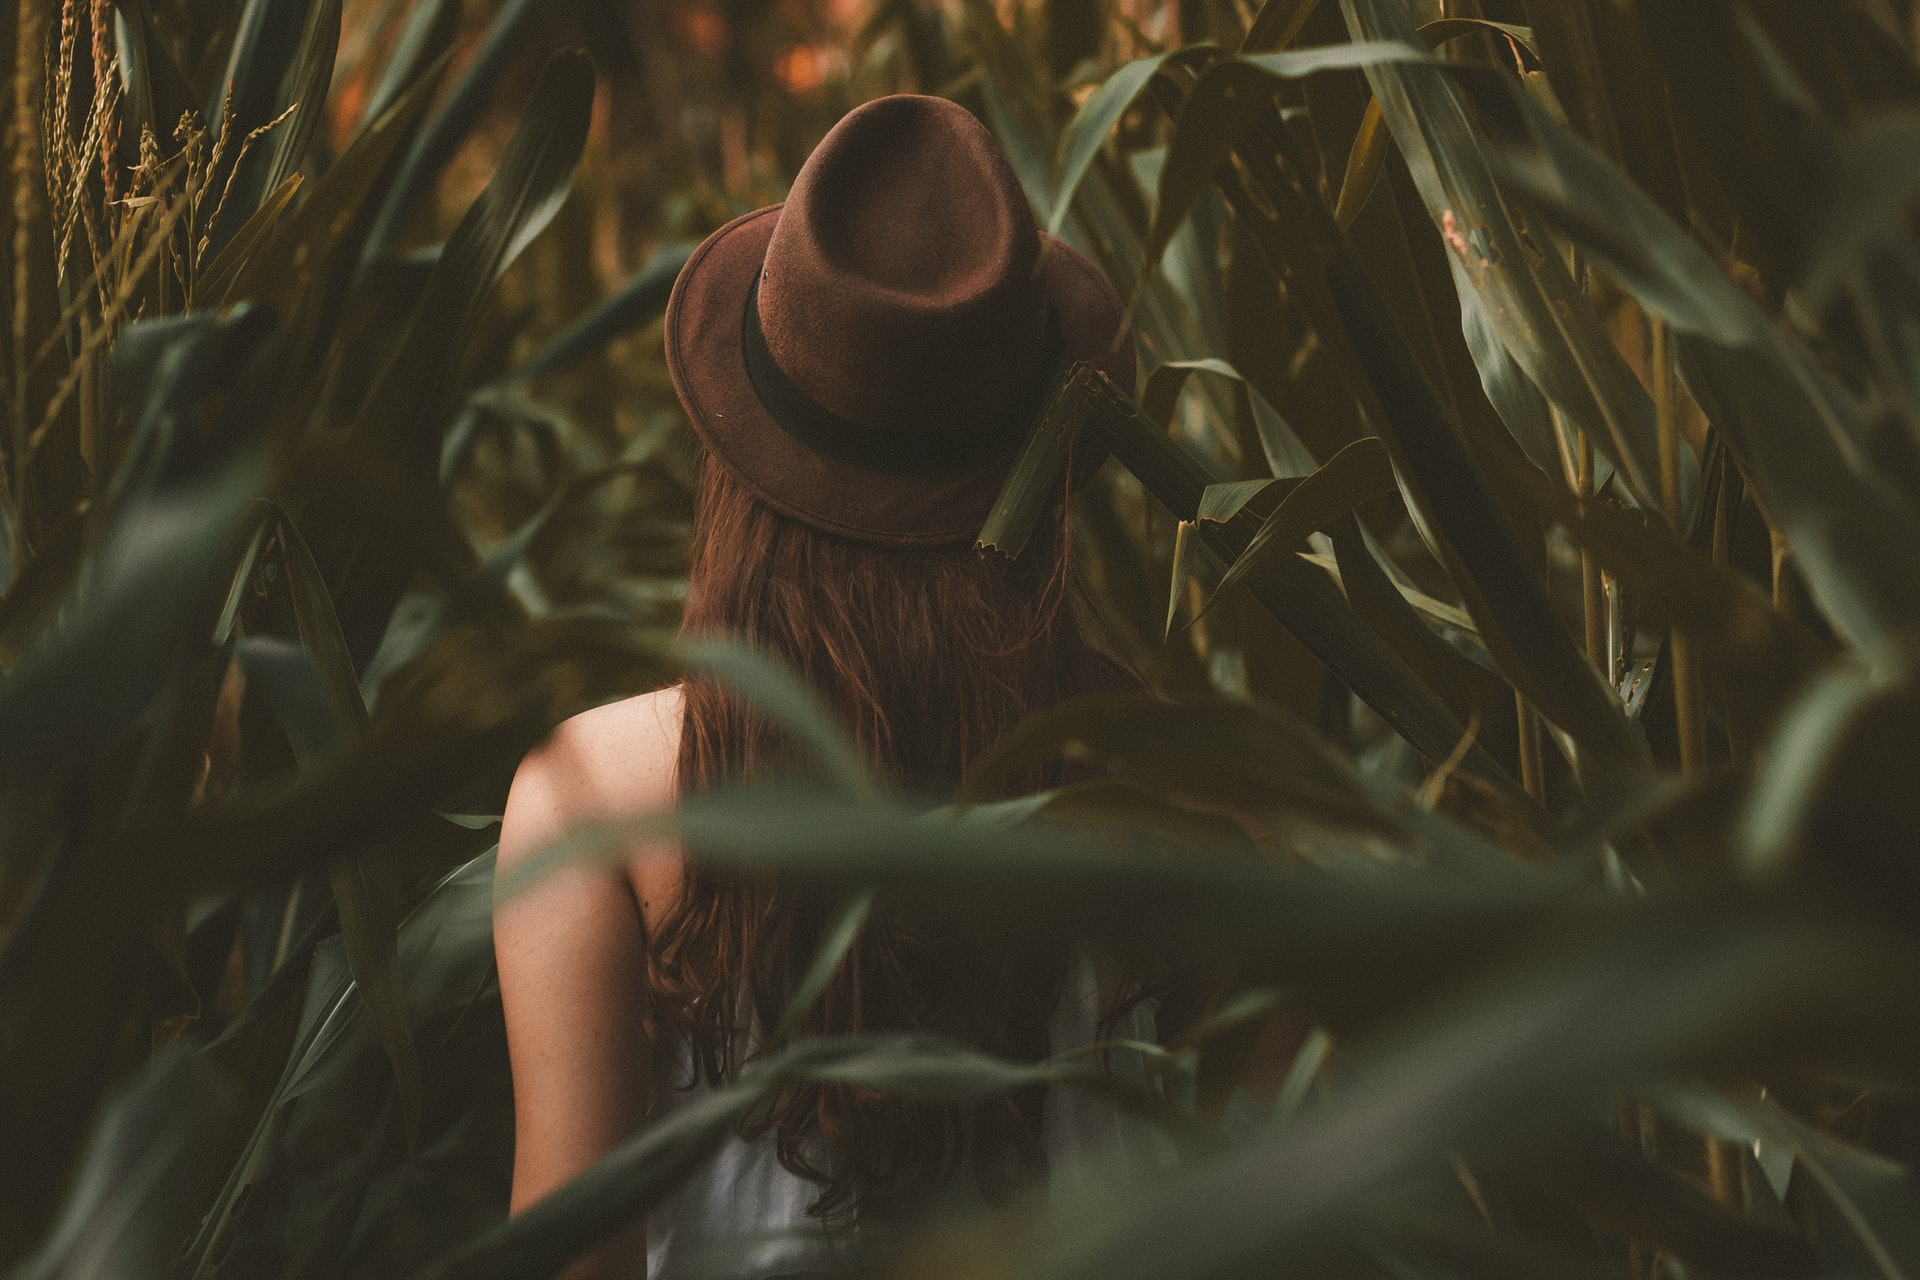 storytelling photo: person wearing hat walks away from camera through long grass